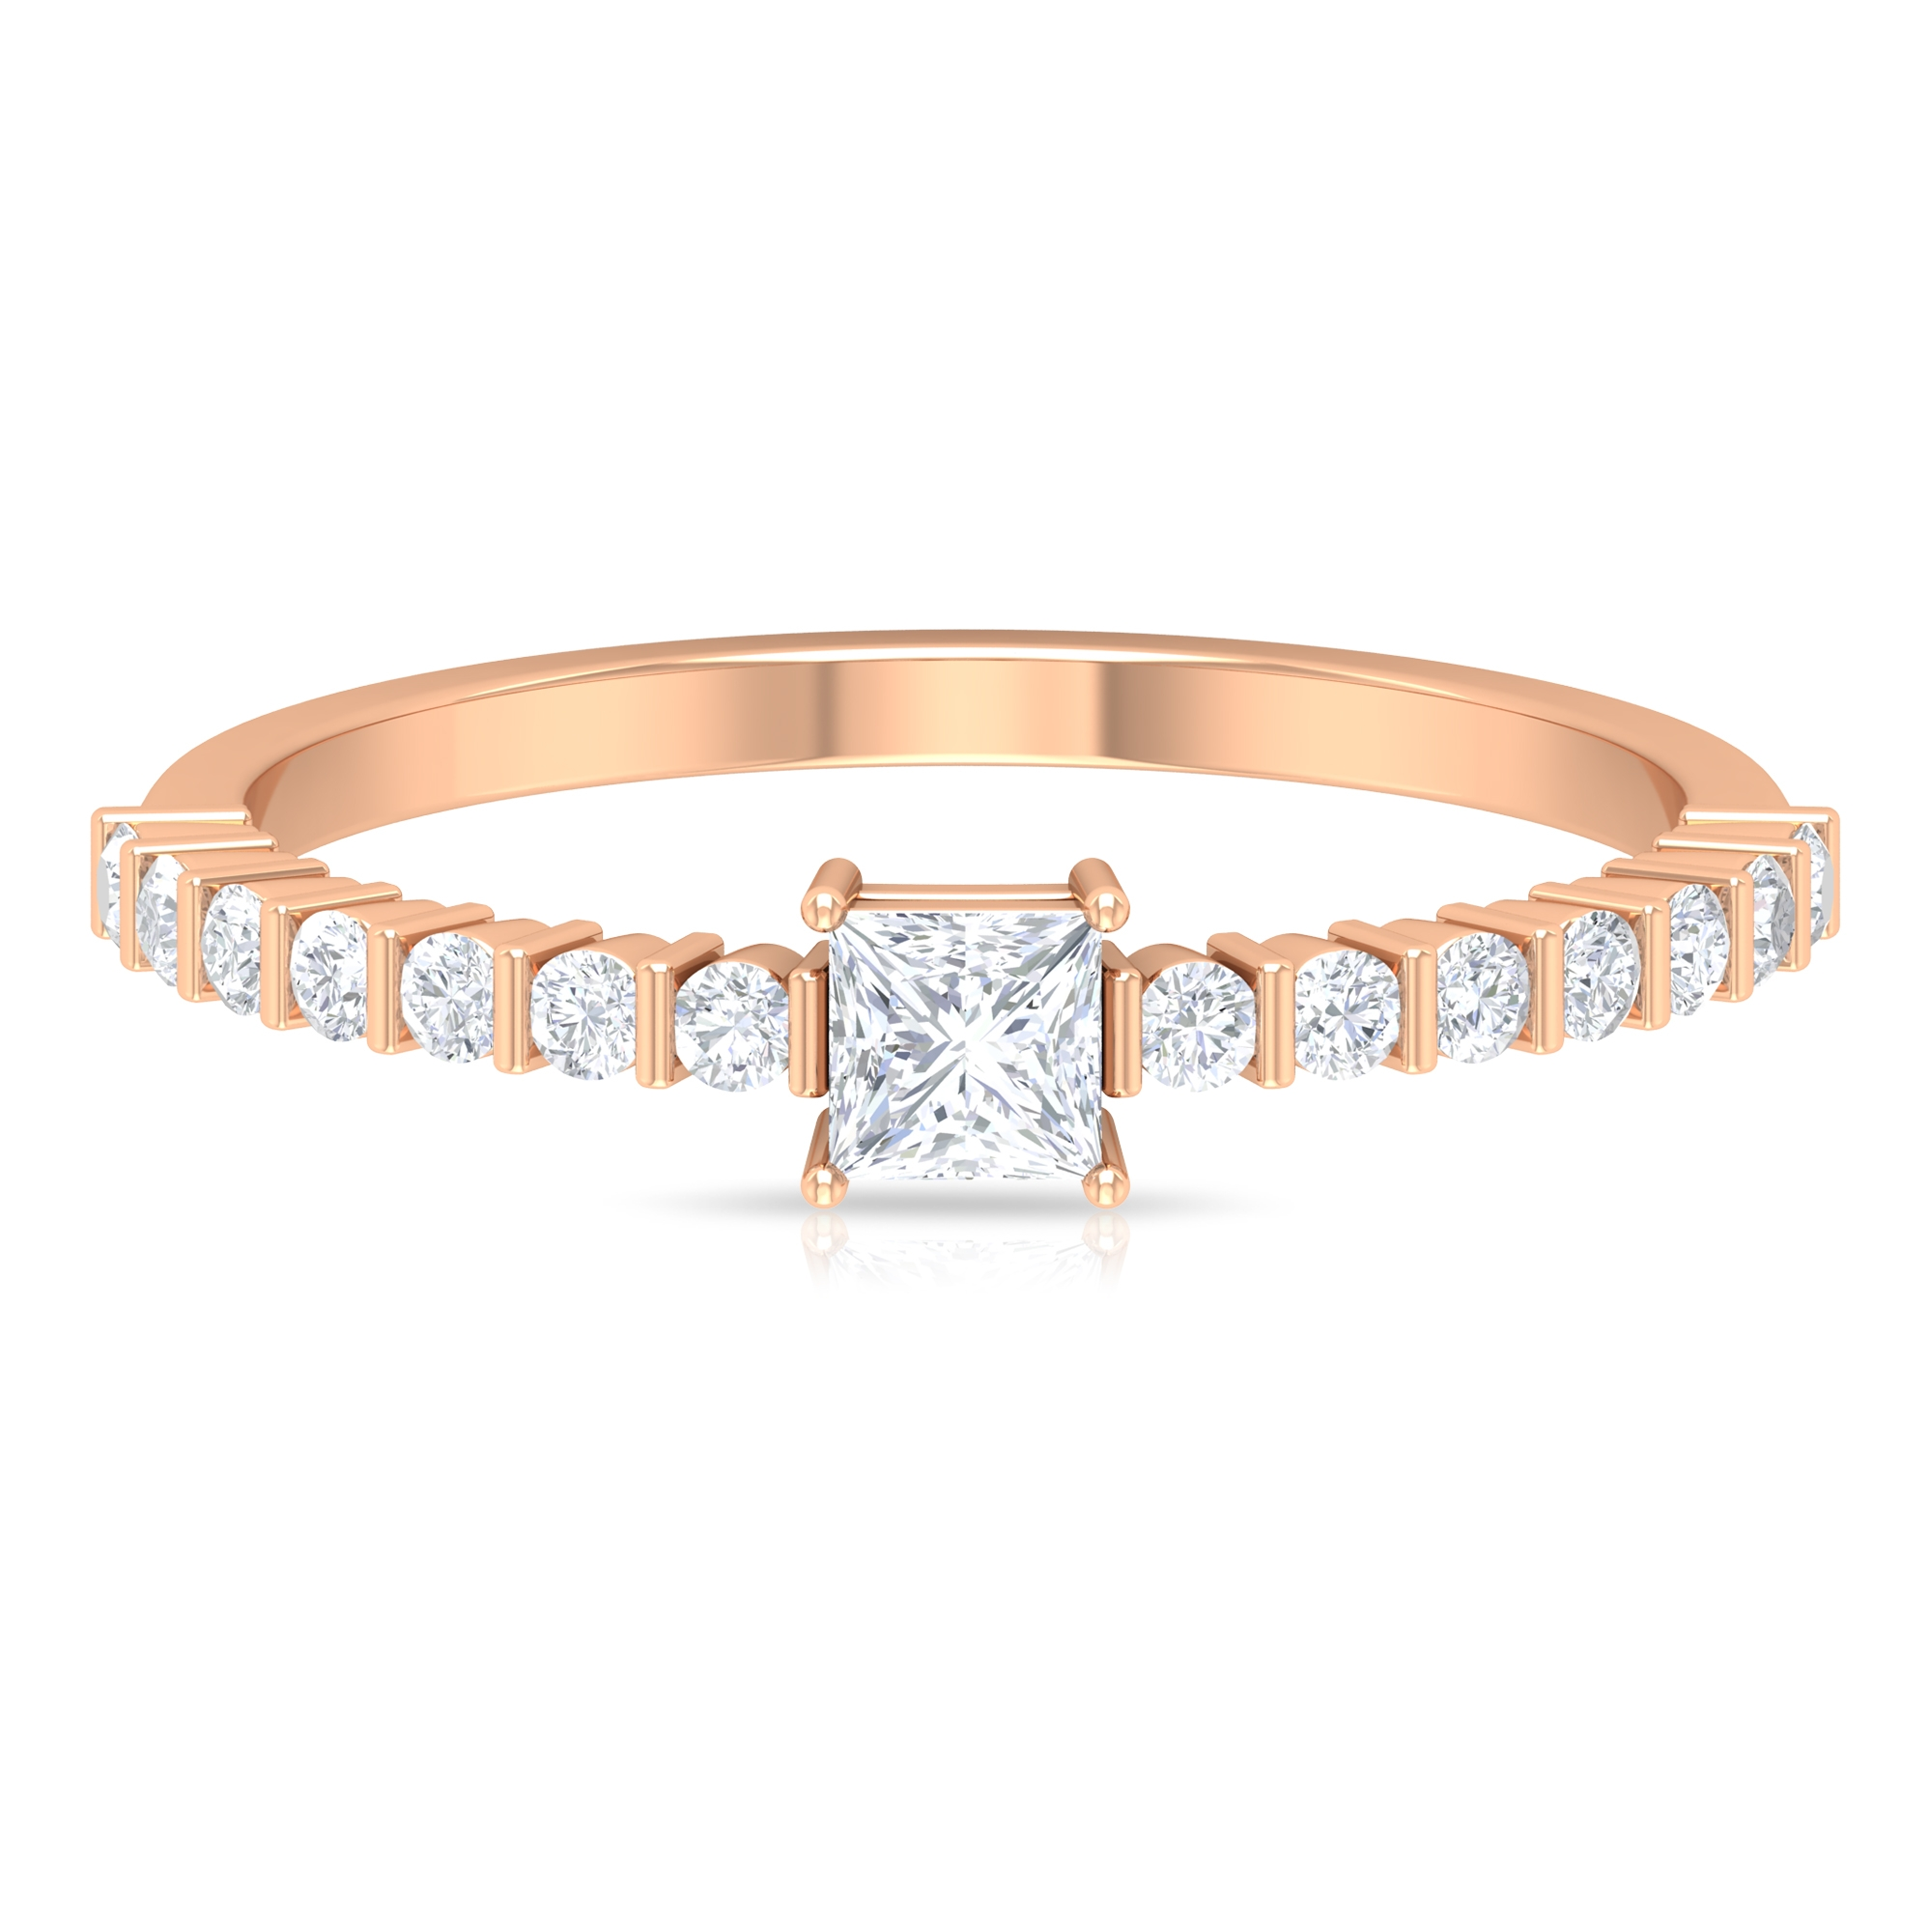 1/2 CT Princess Cut Diamond Solitaire 4-Prong Set Ring with Bar Set Side Stones